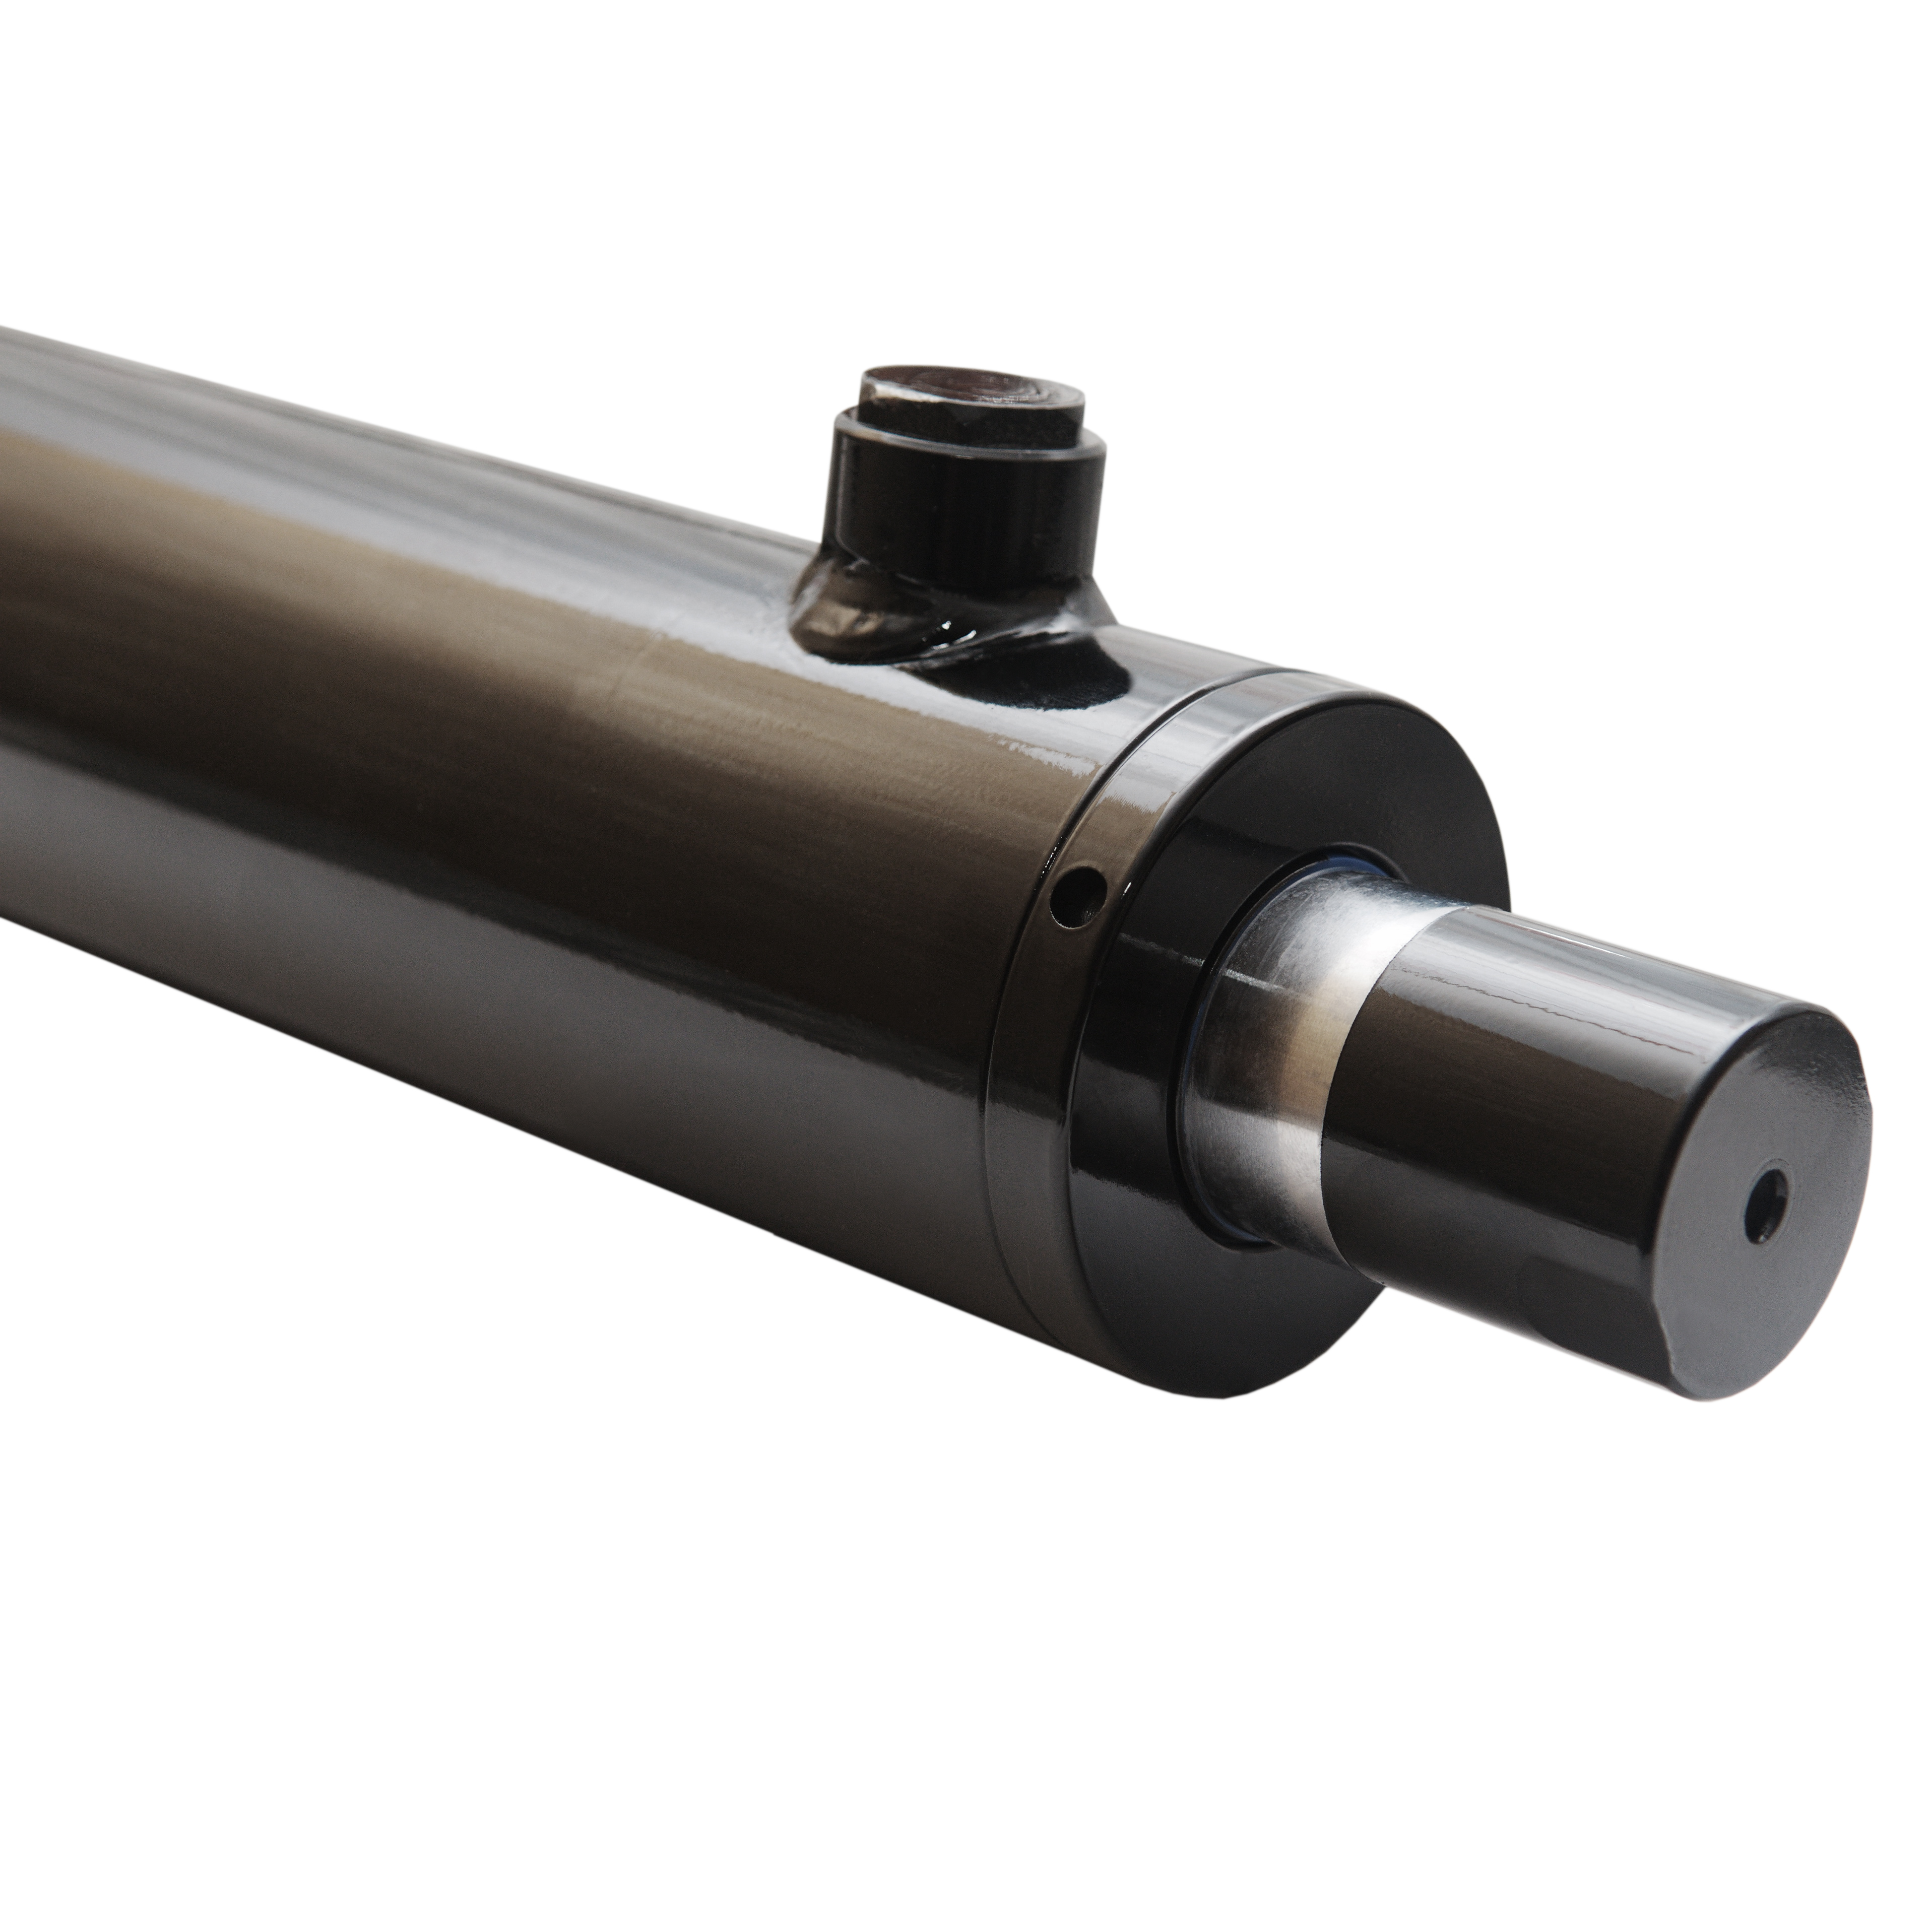 2.5 bore x 13 stroke hydraulic cylinder, welded universal double acting cylinder | Magister Hydraulics